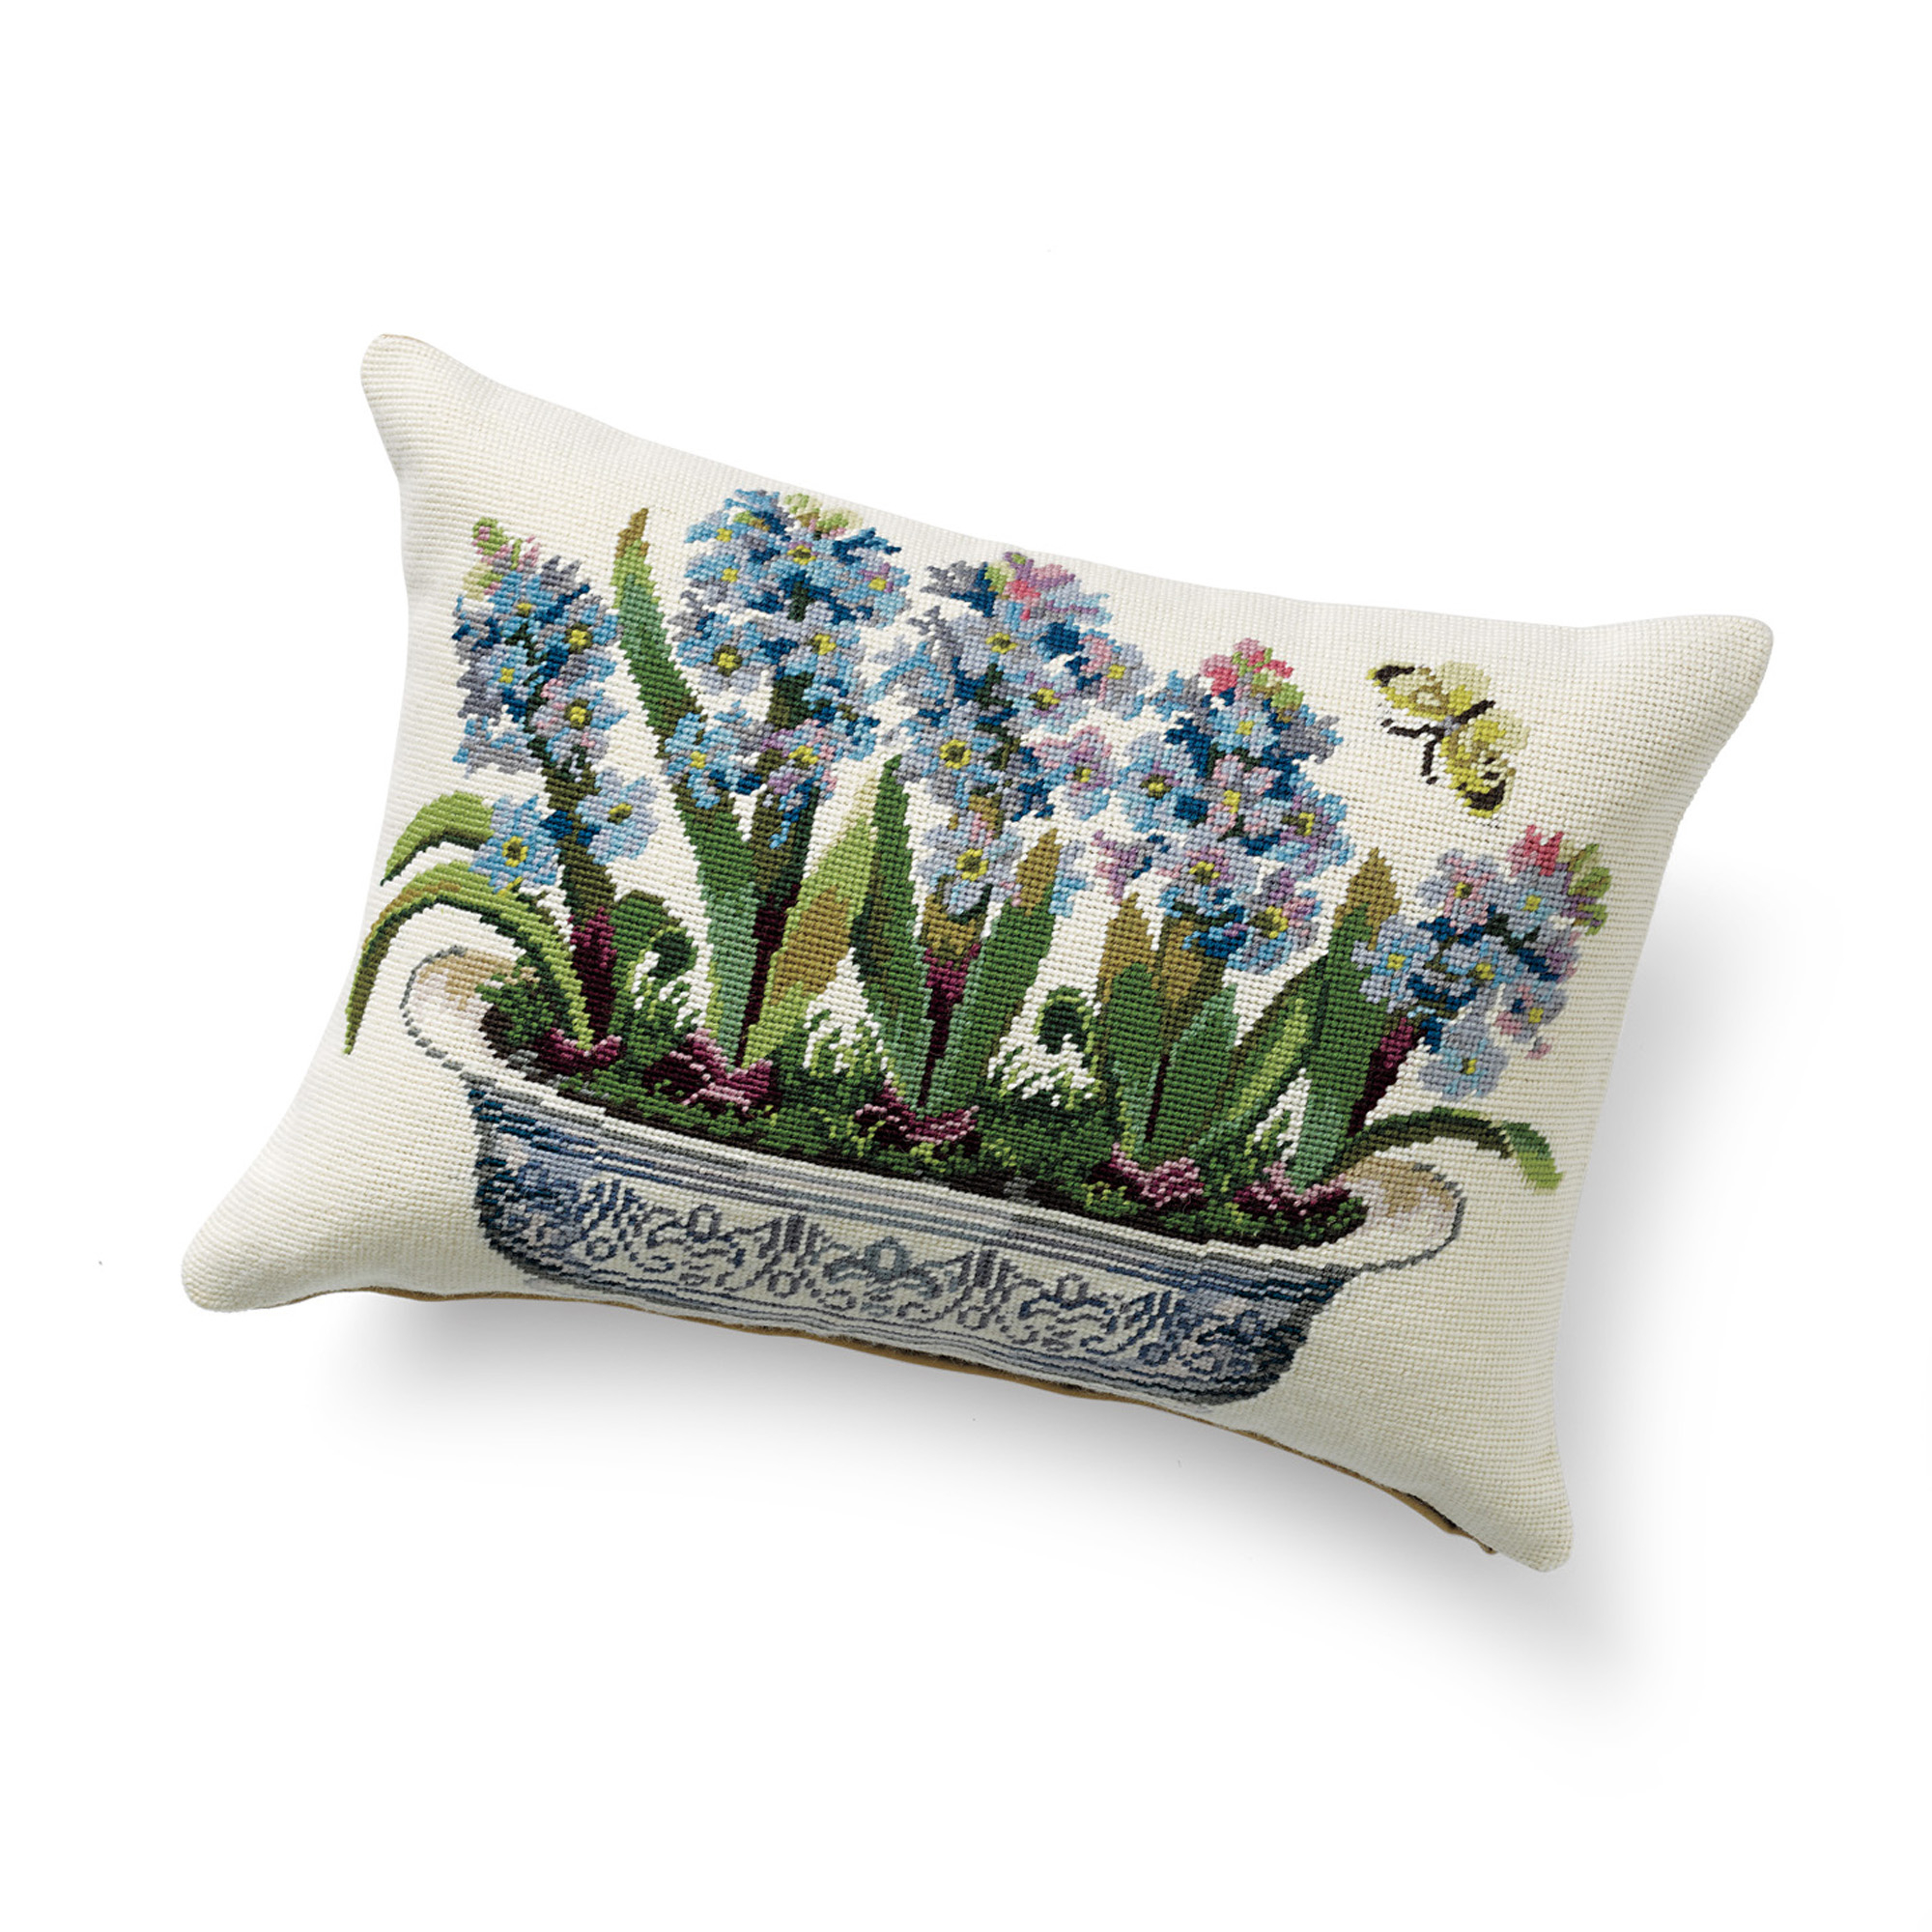 Hyacinth In Blue & White Pot Needlepoint Pillow